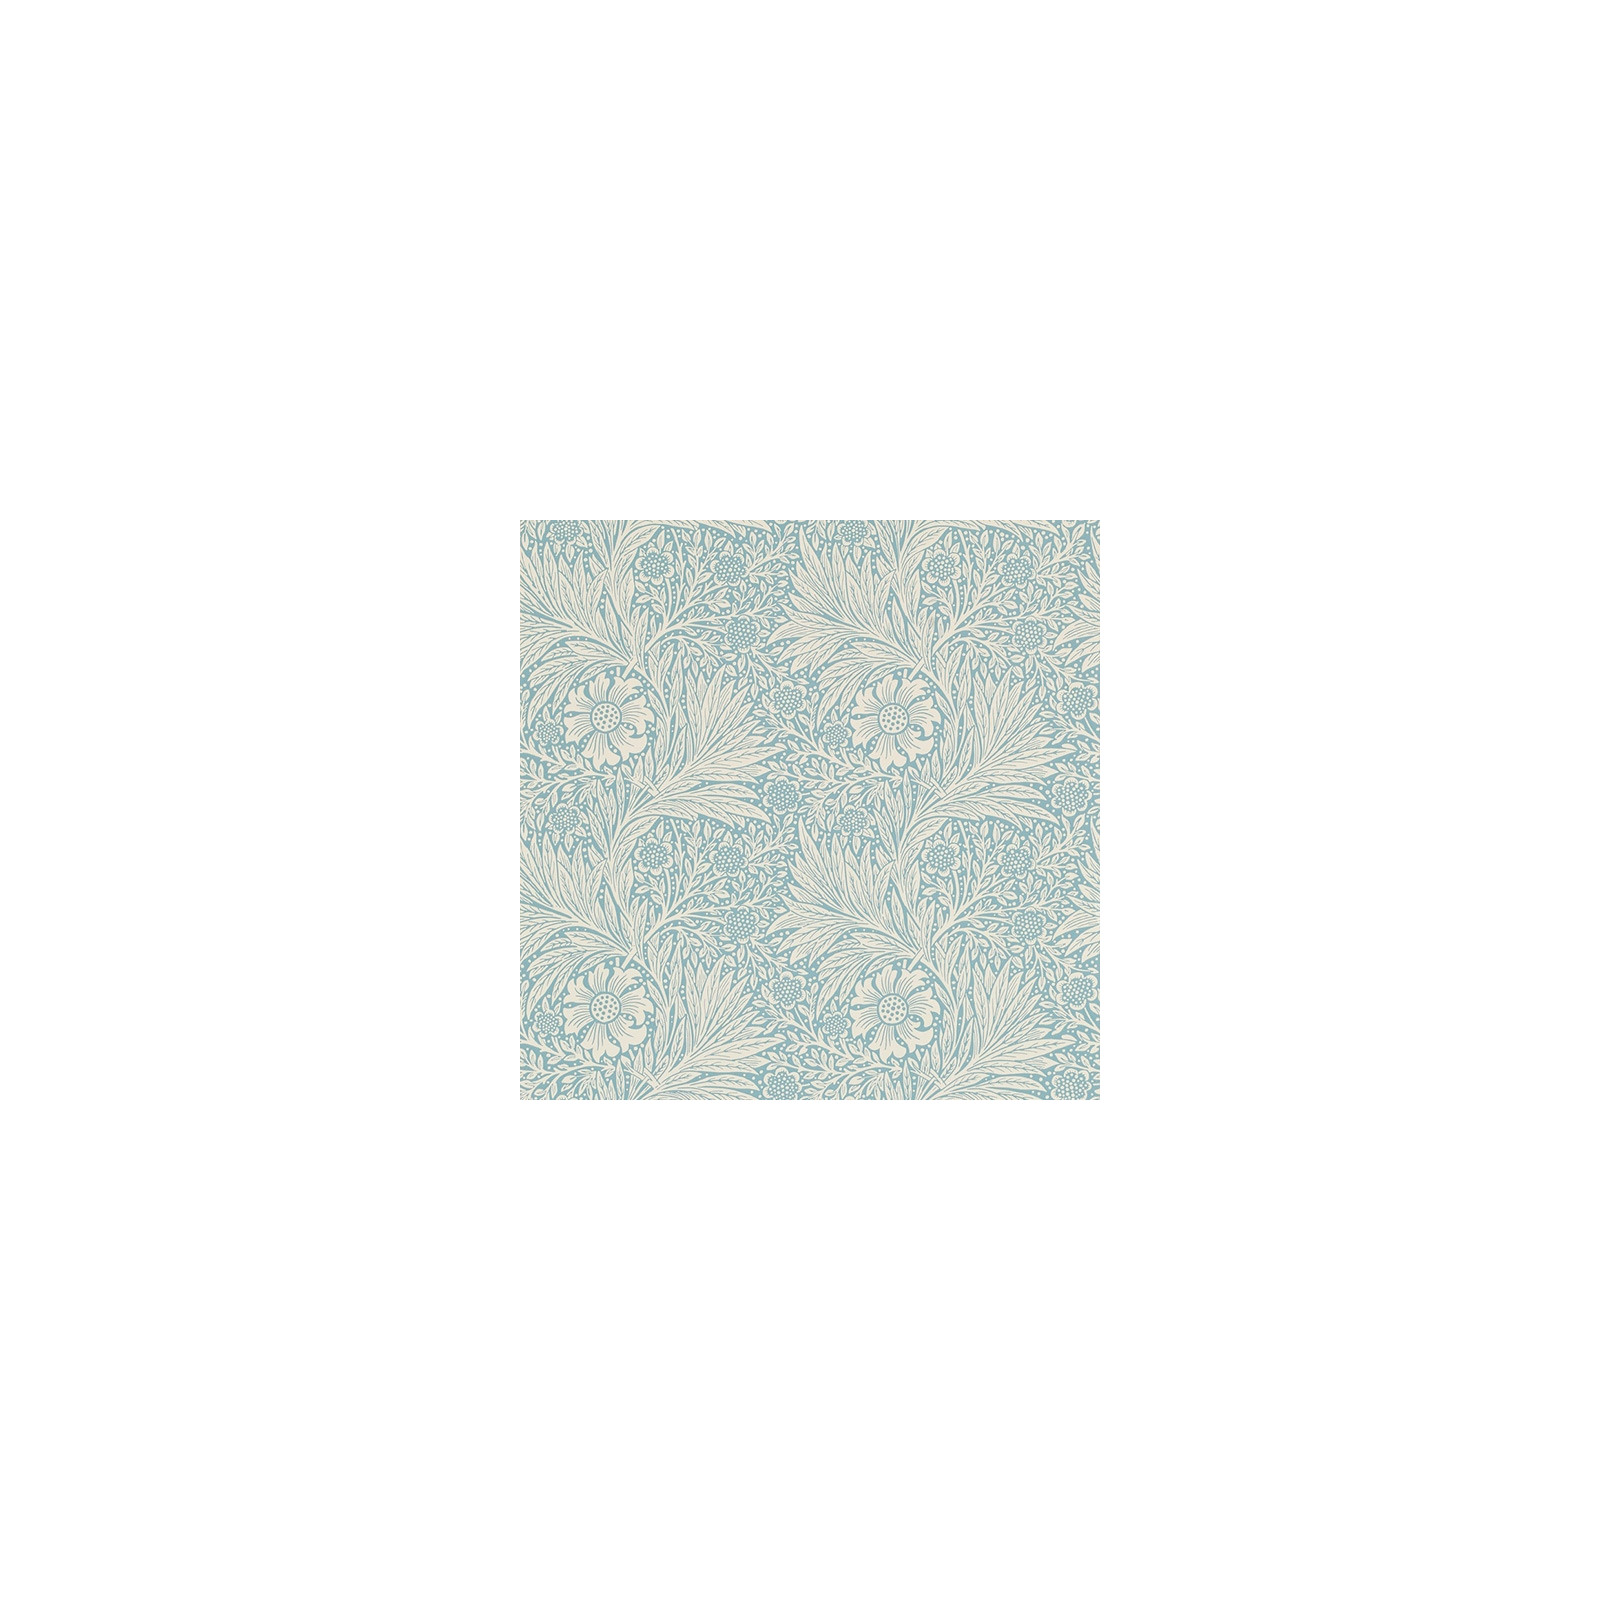 Papier Peint Marigold Bleu Clair Collection The Craftsman Wallpapers Morris Co